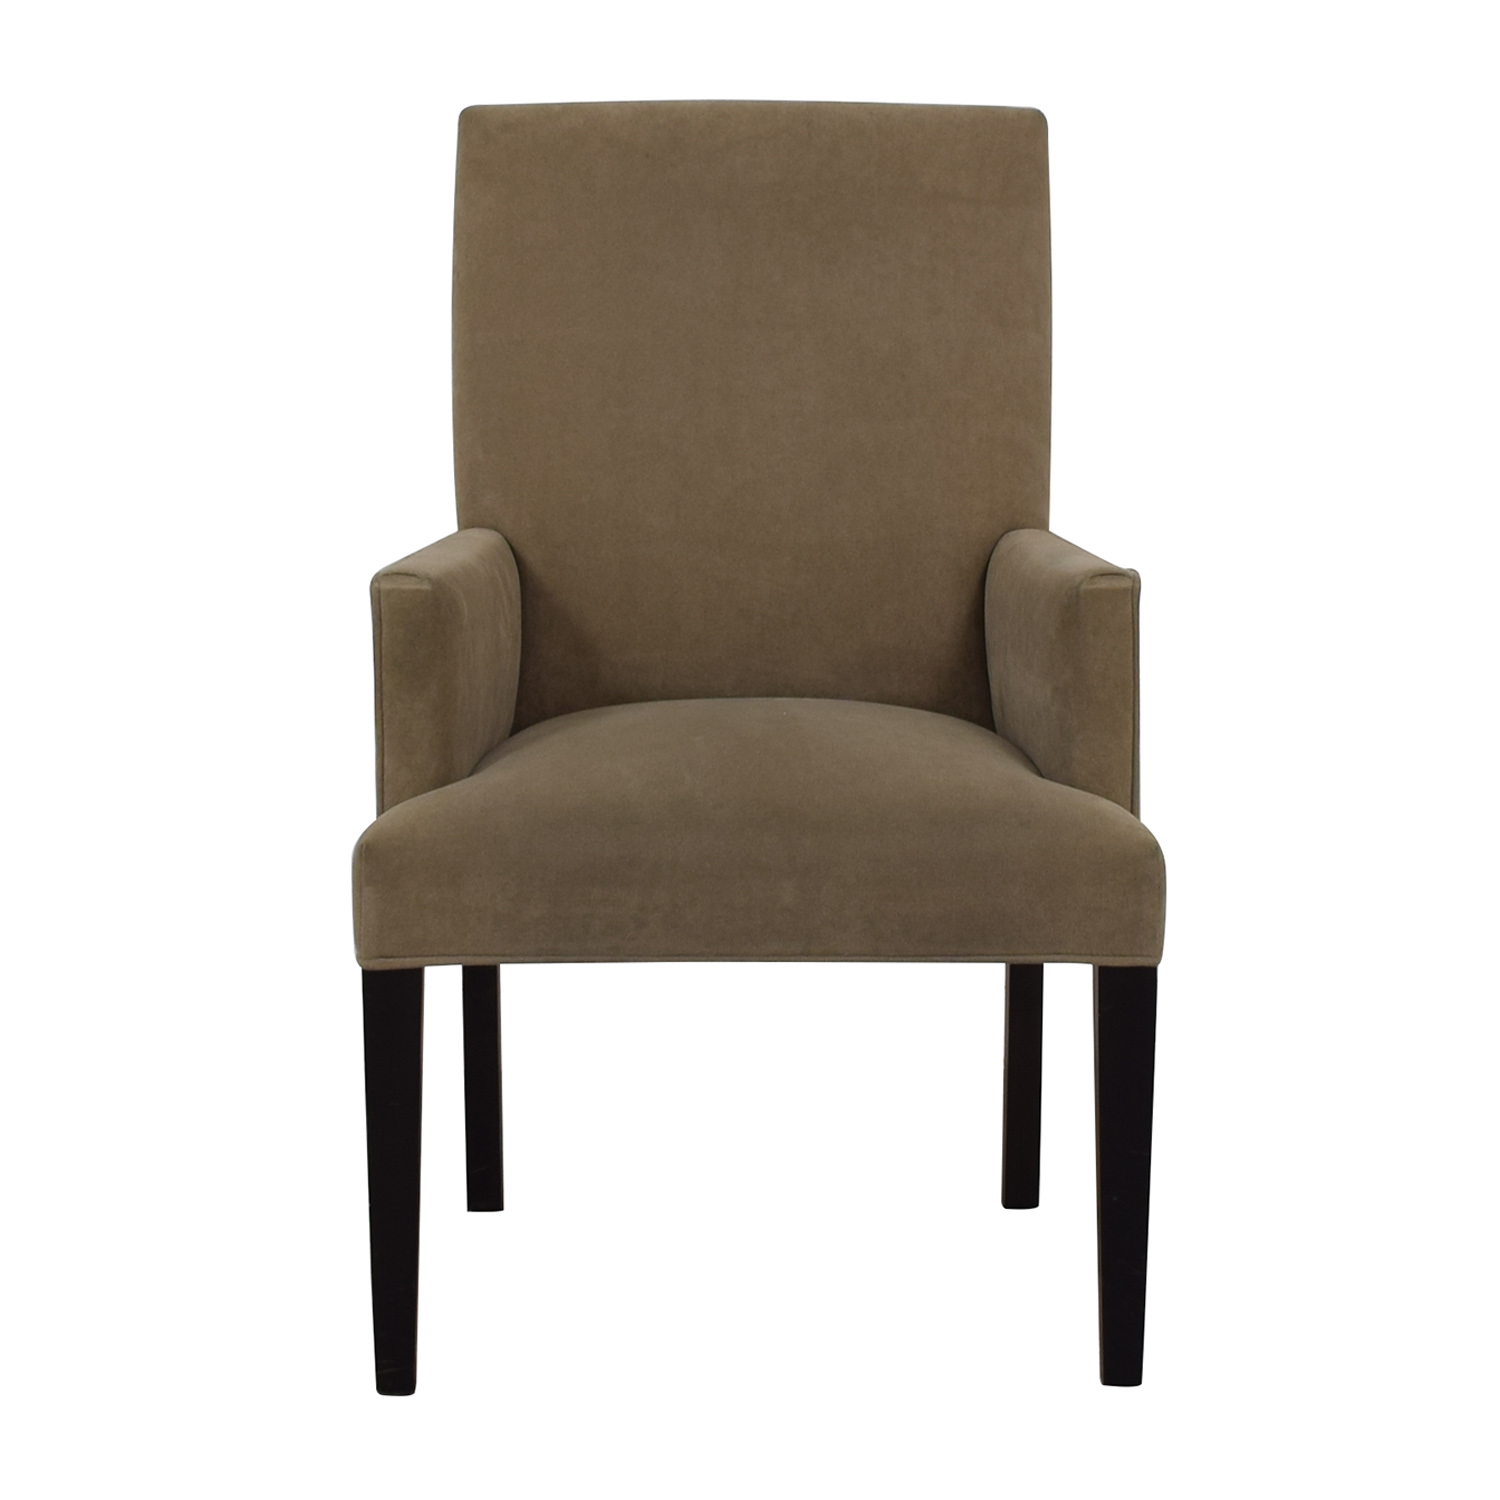 Crate & Barrel Crate & Barrel Tan Dining Chair Dining Chairs